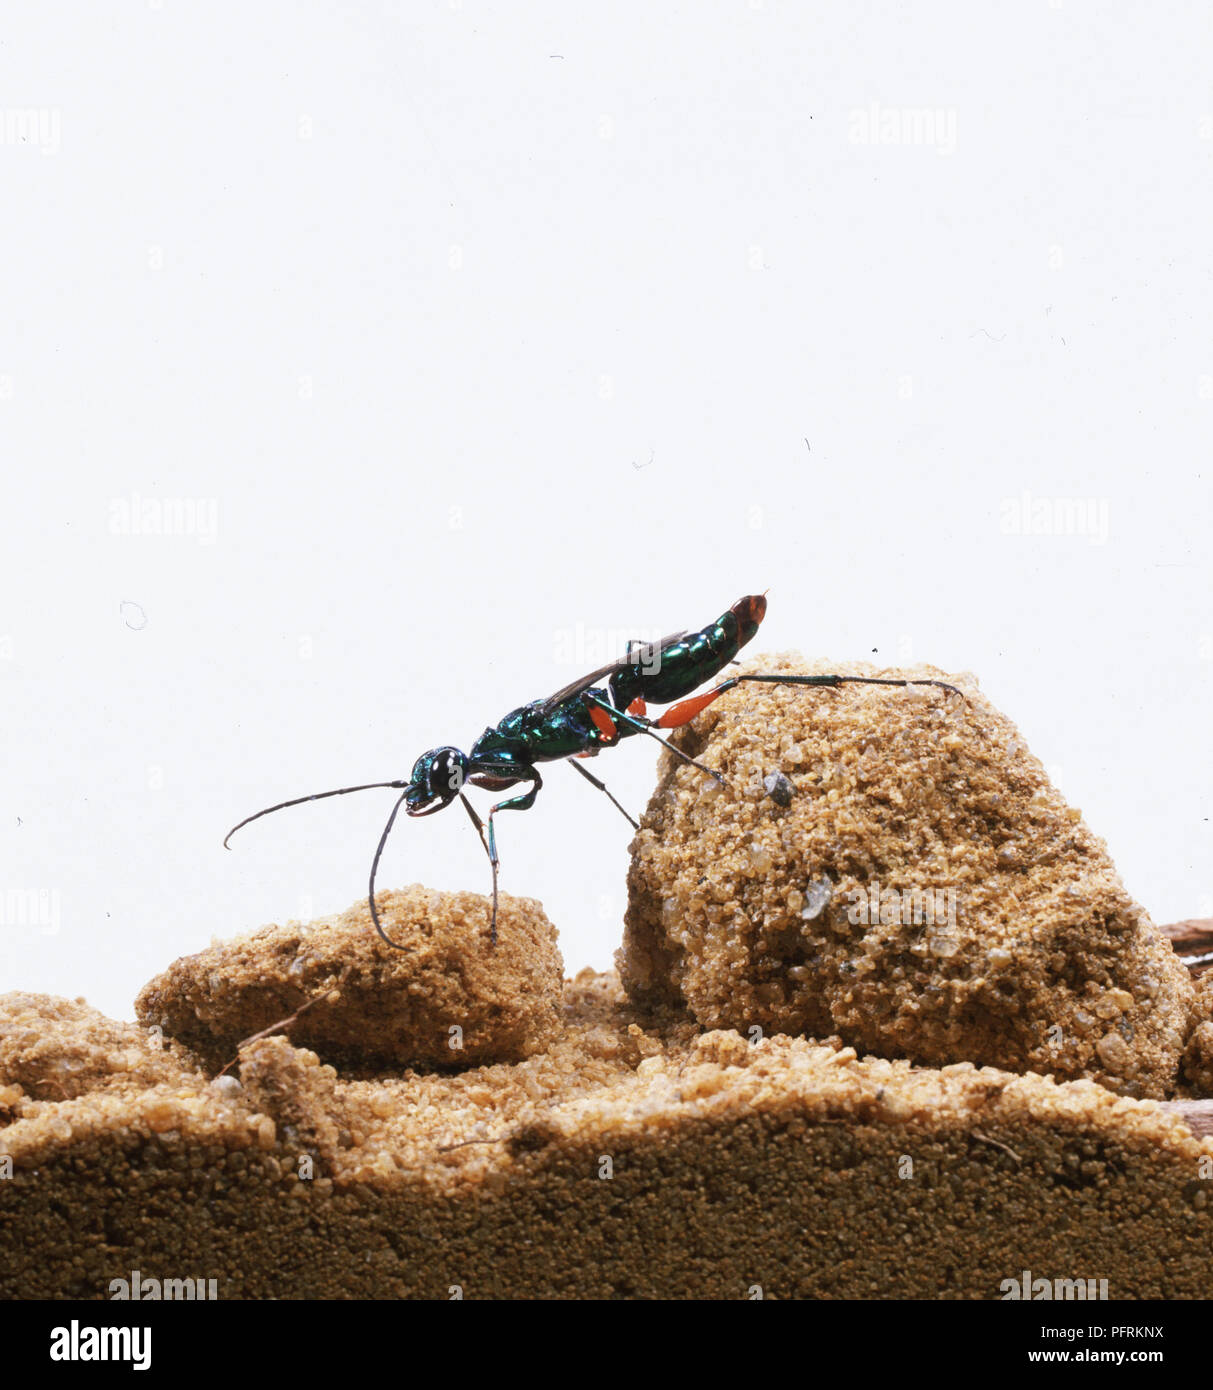 Emerald Cockroach Wasp or Jewel Wasp (Ampulex compressa) on sandy rock, side view - Stock Image